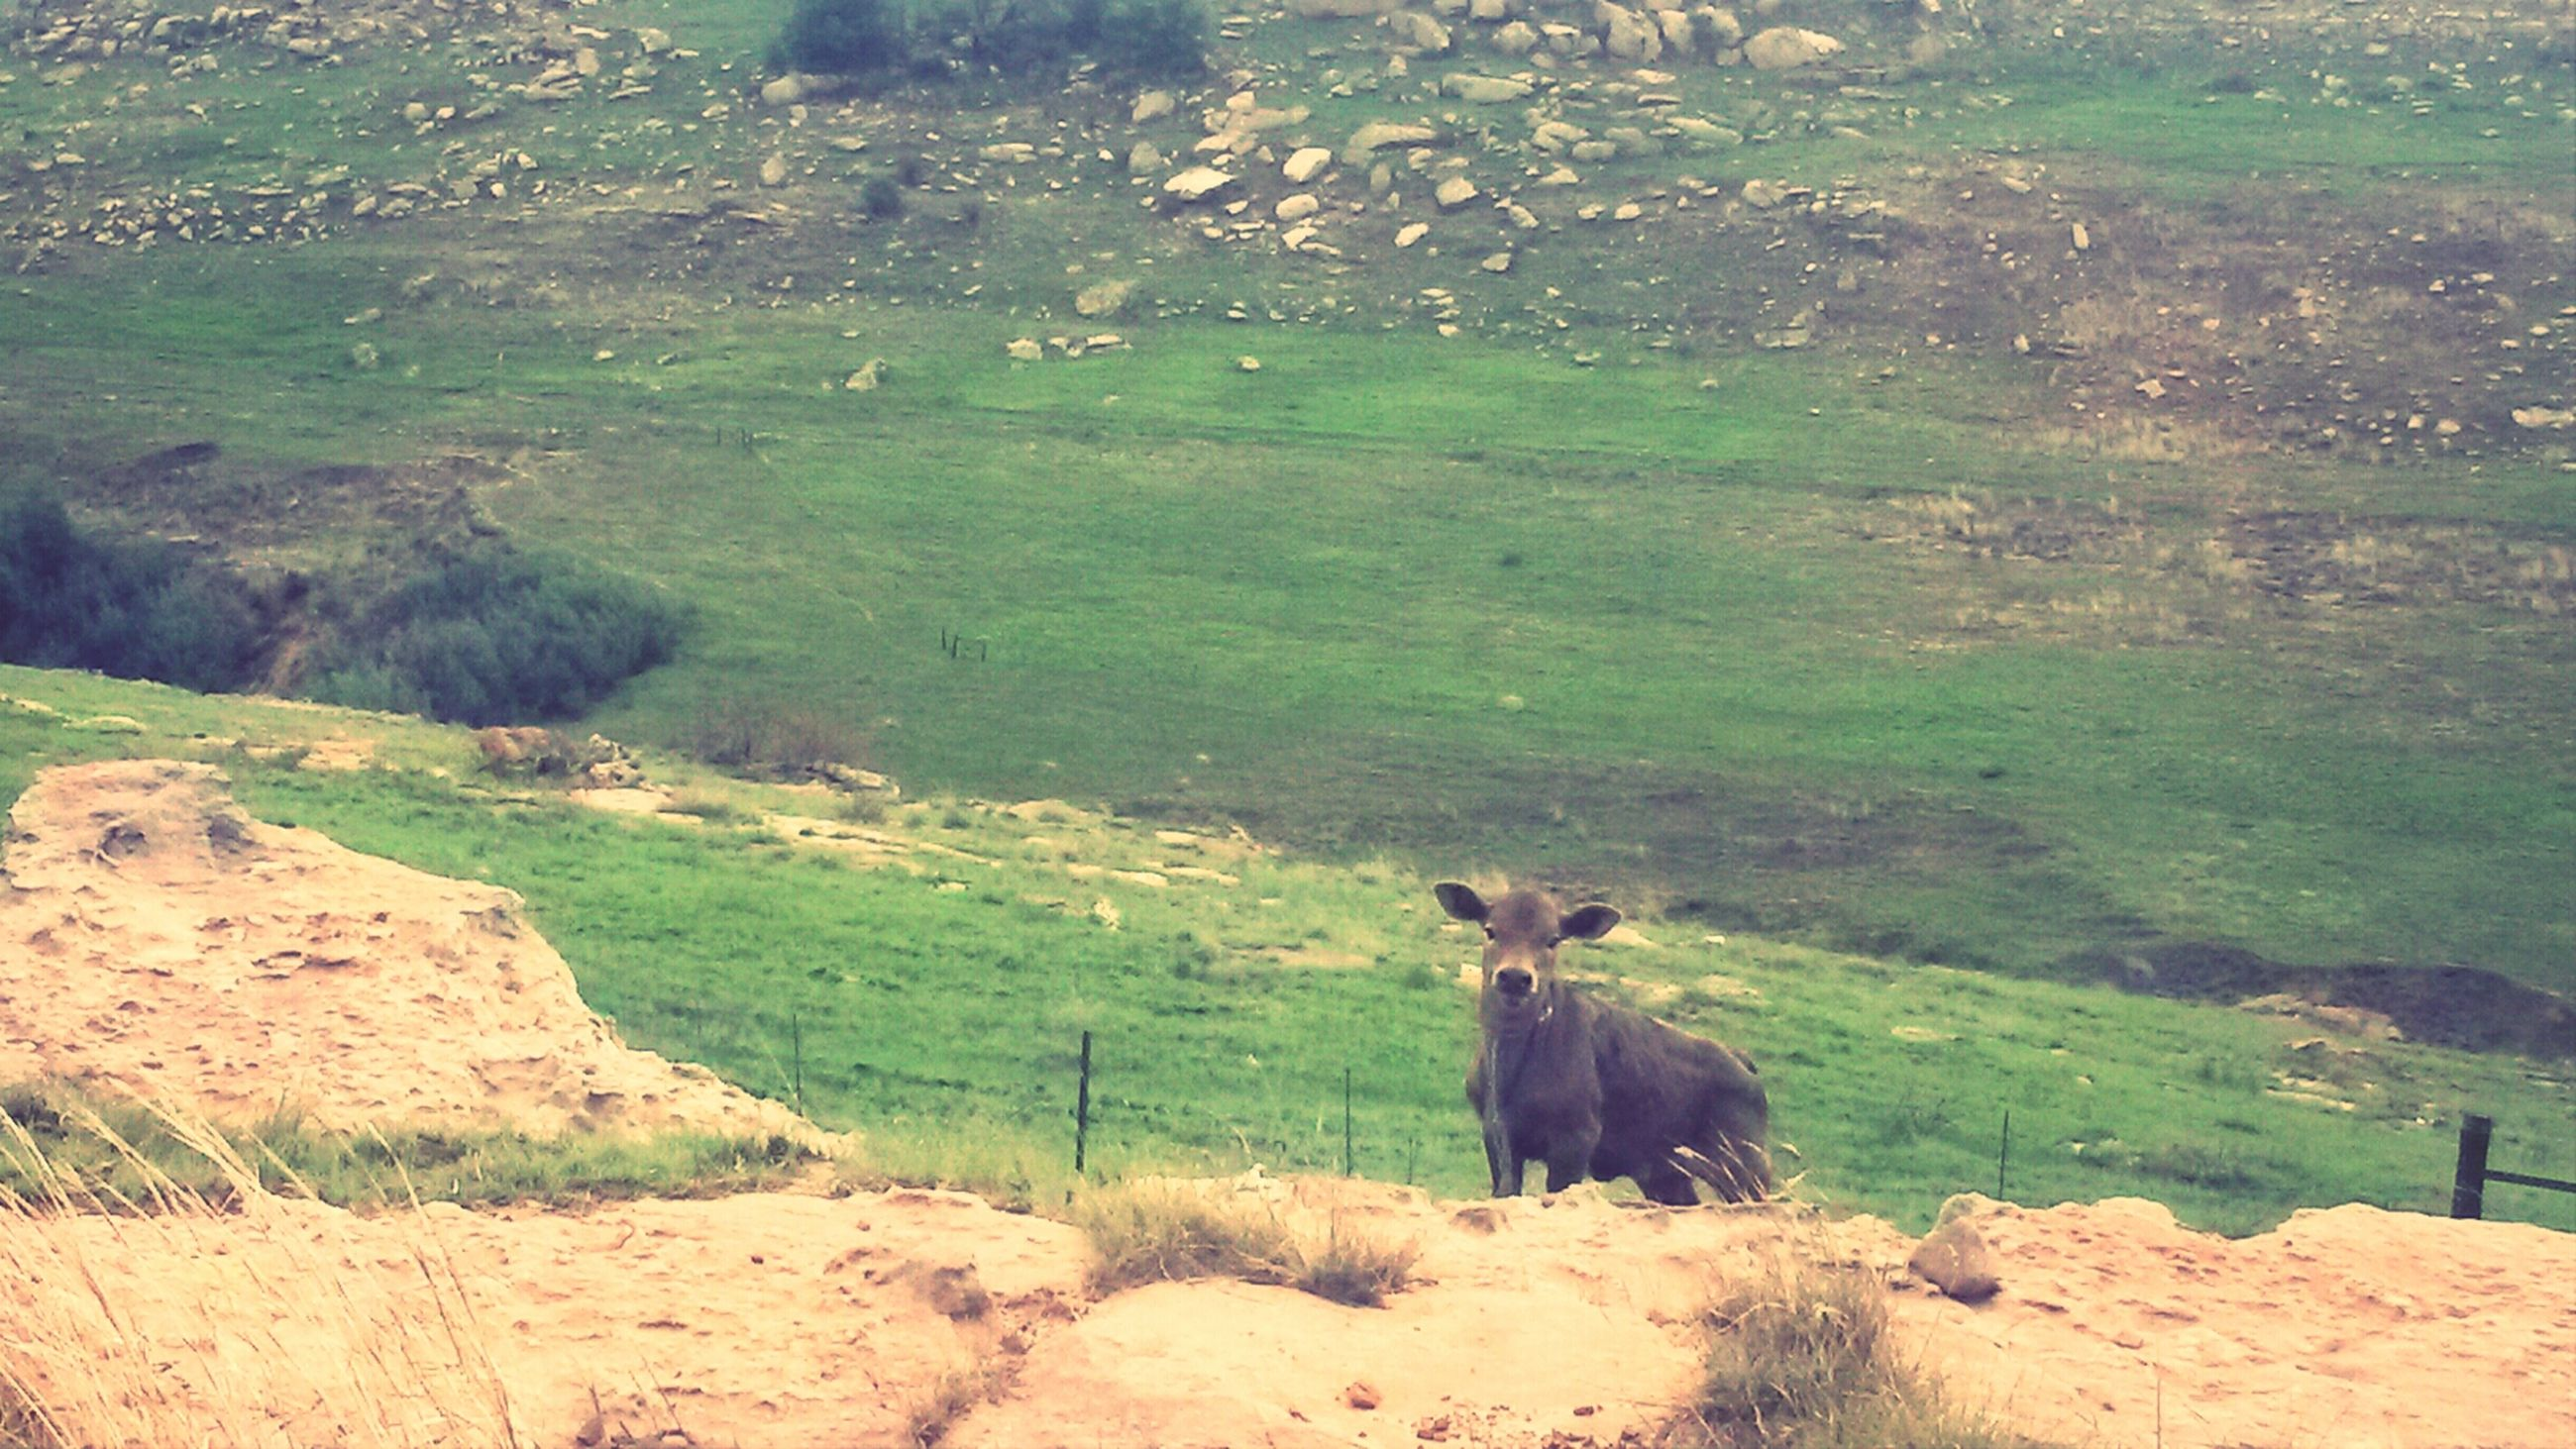 animal themes, landscape, mountain, mammal, nature, one animal, tranquil scene, tranquility, beauty in nature, rock - object, grass, domestic animals, scenics, non-urban scene, high angle view, day, field, plant, green color, animals in the wild